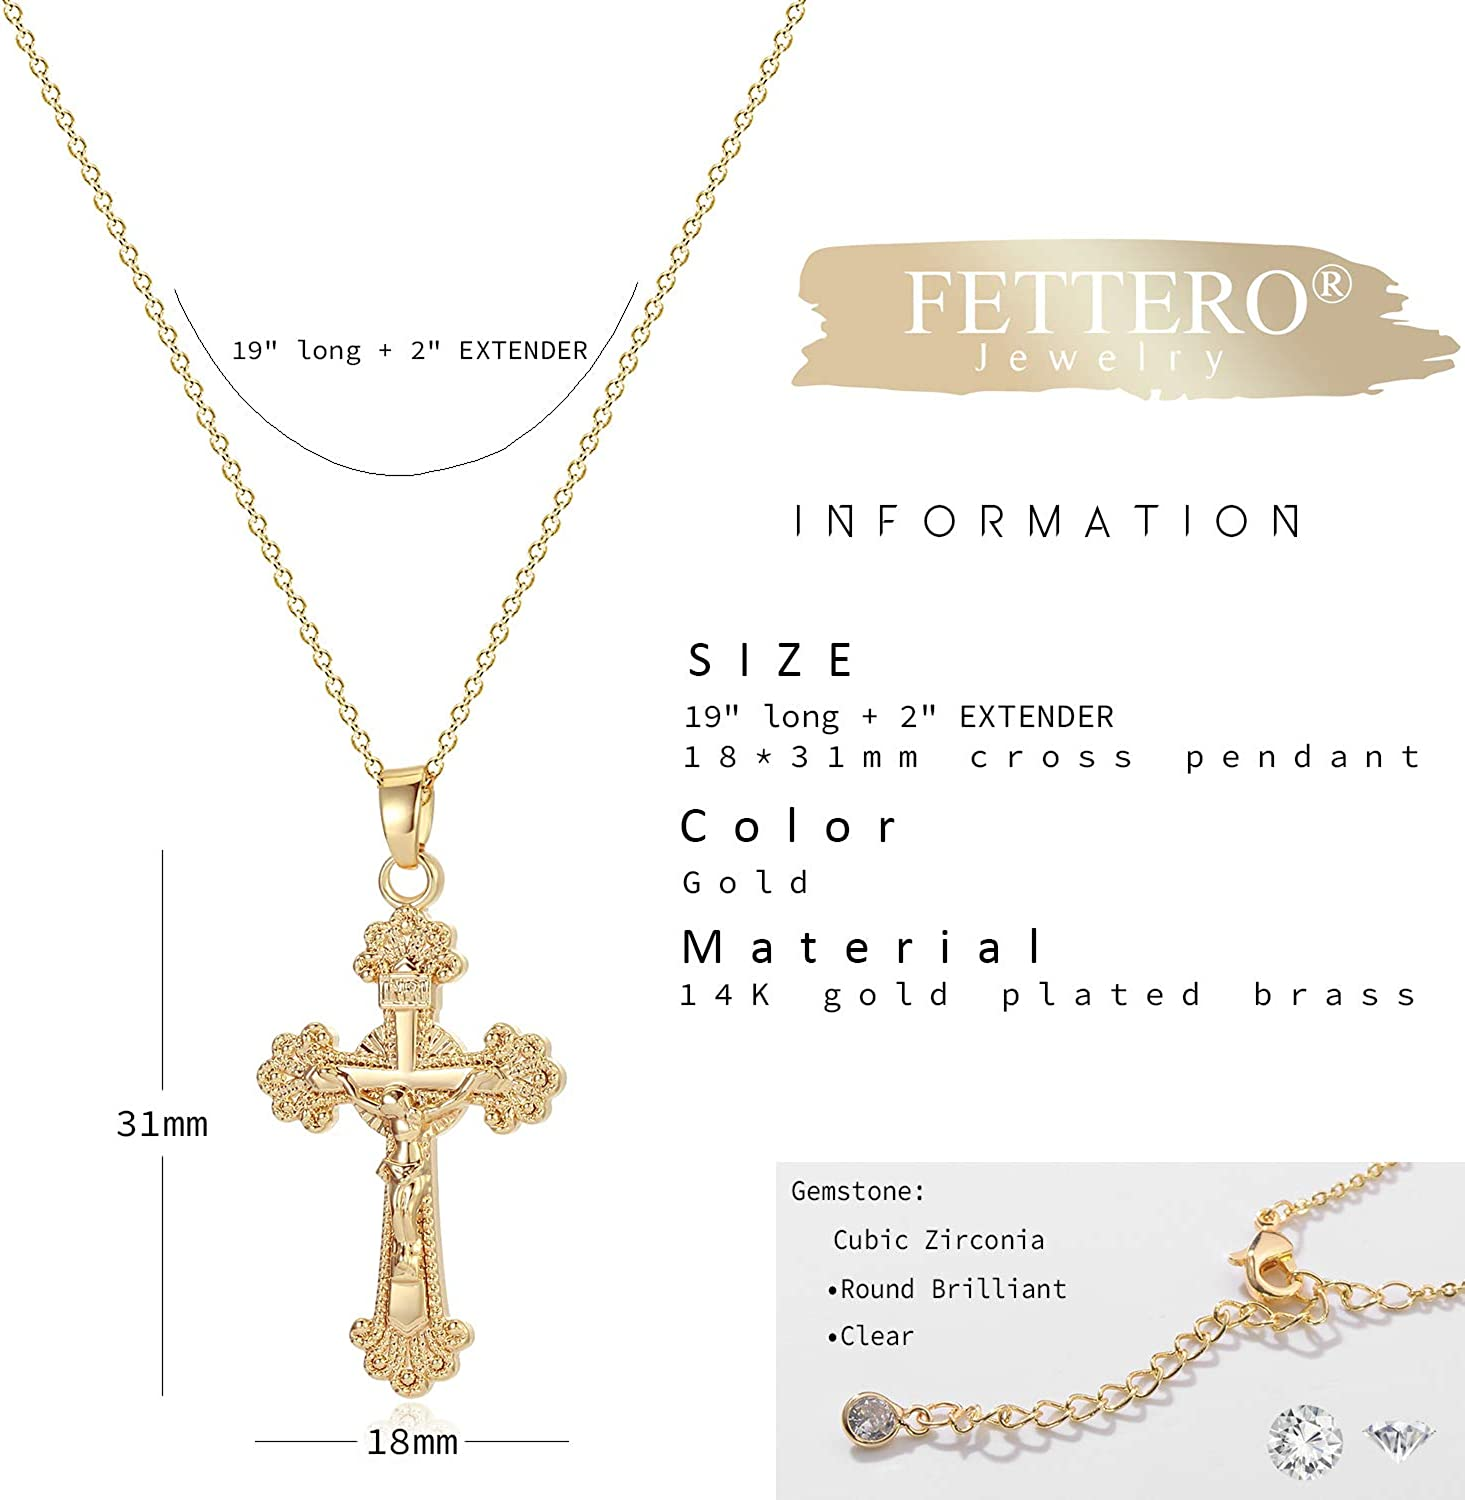 Gold Filled Crucifix Necklace Thick Chain Choker Gold Crucifix Choker Charm Large Curb Chain Chokers Women Jewelry Gift Best Seller